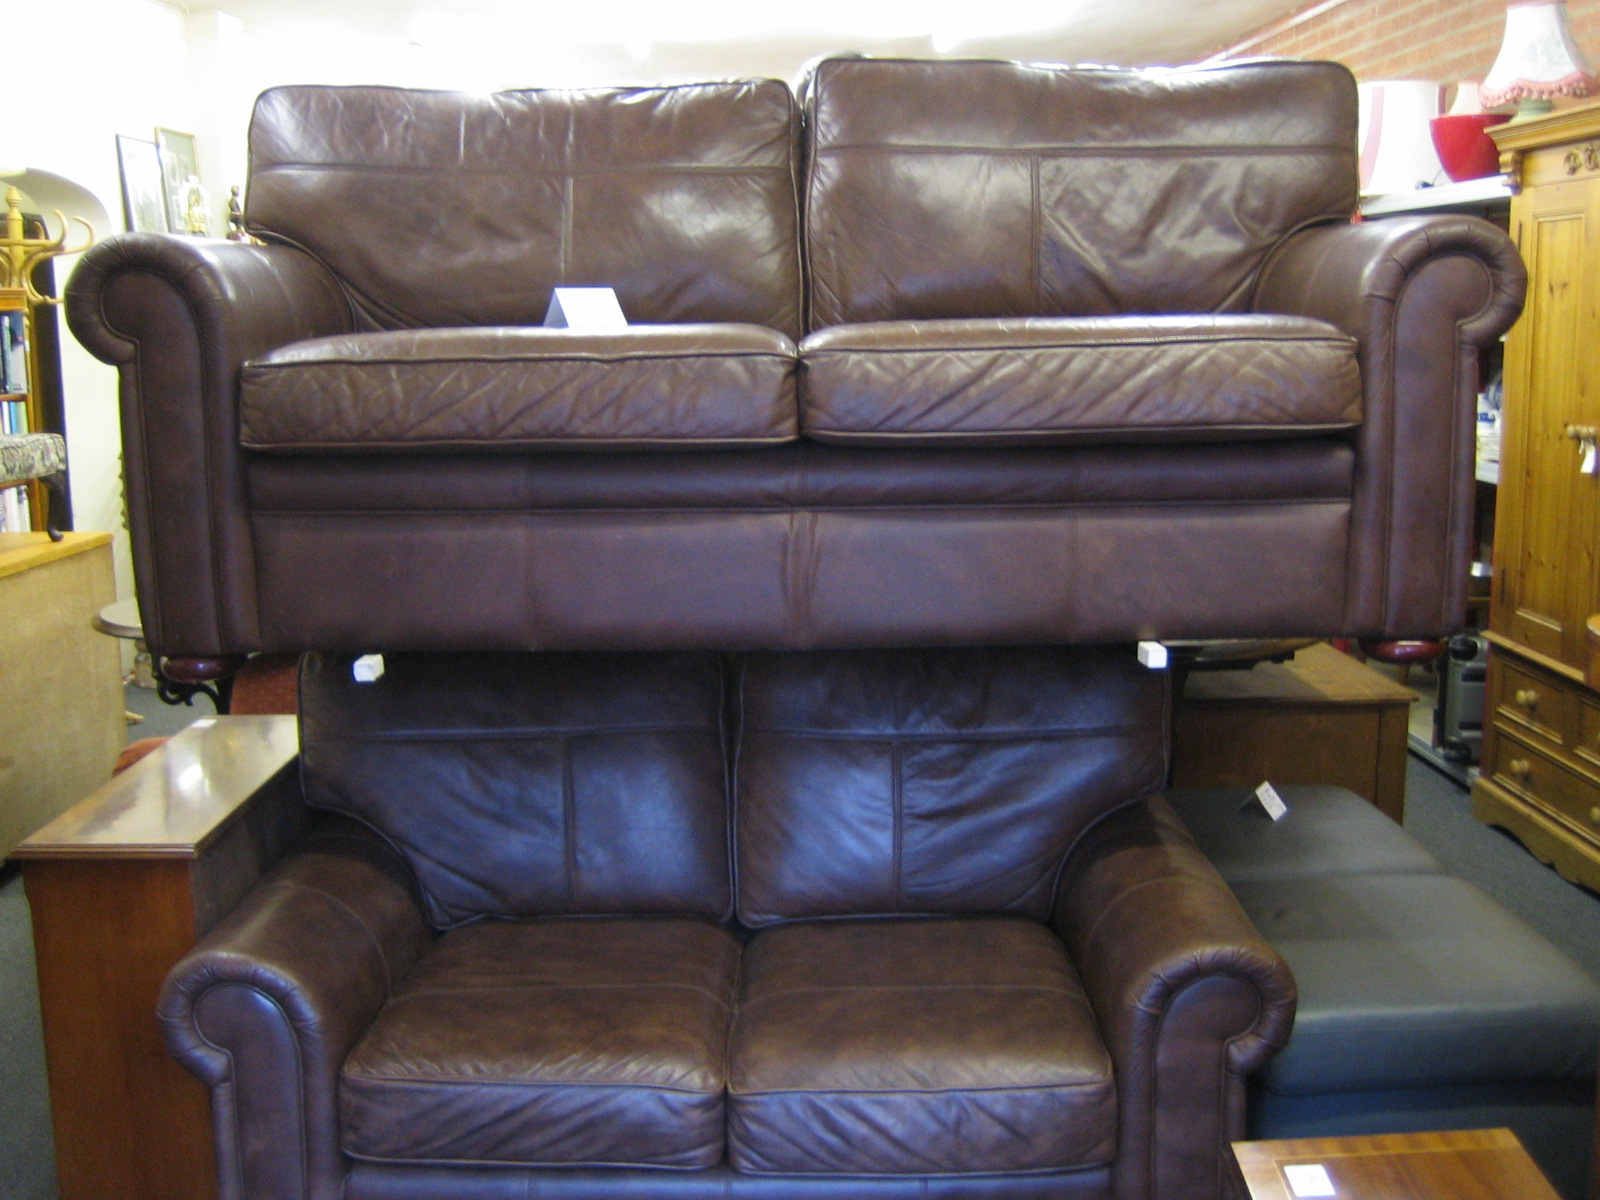 Settee Yorkshire East Yorkshire Selling Service Used Second Hand Or Pre Owned